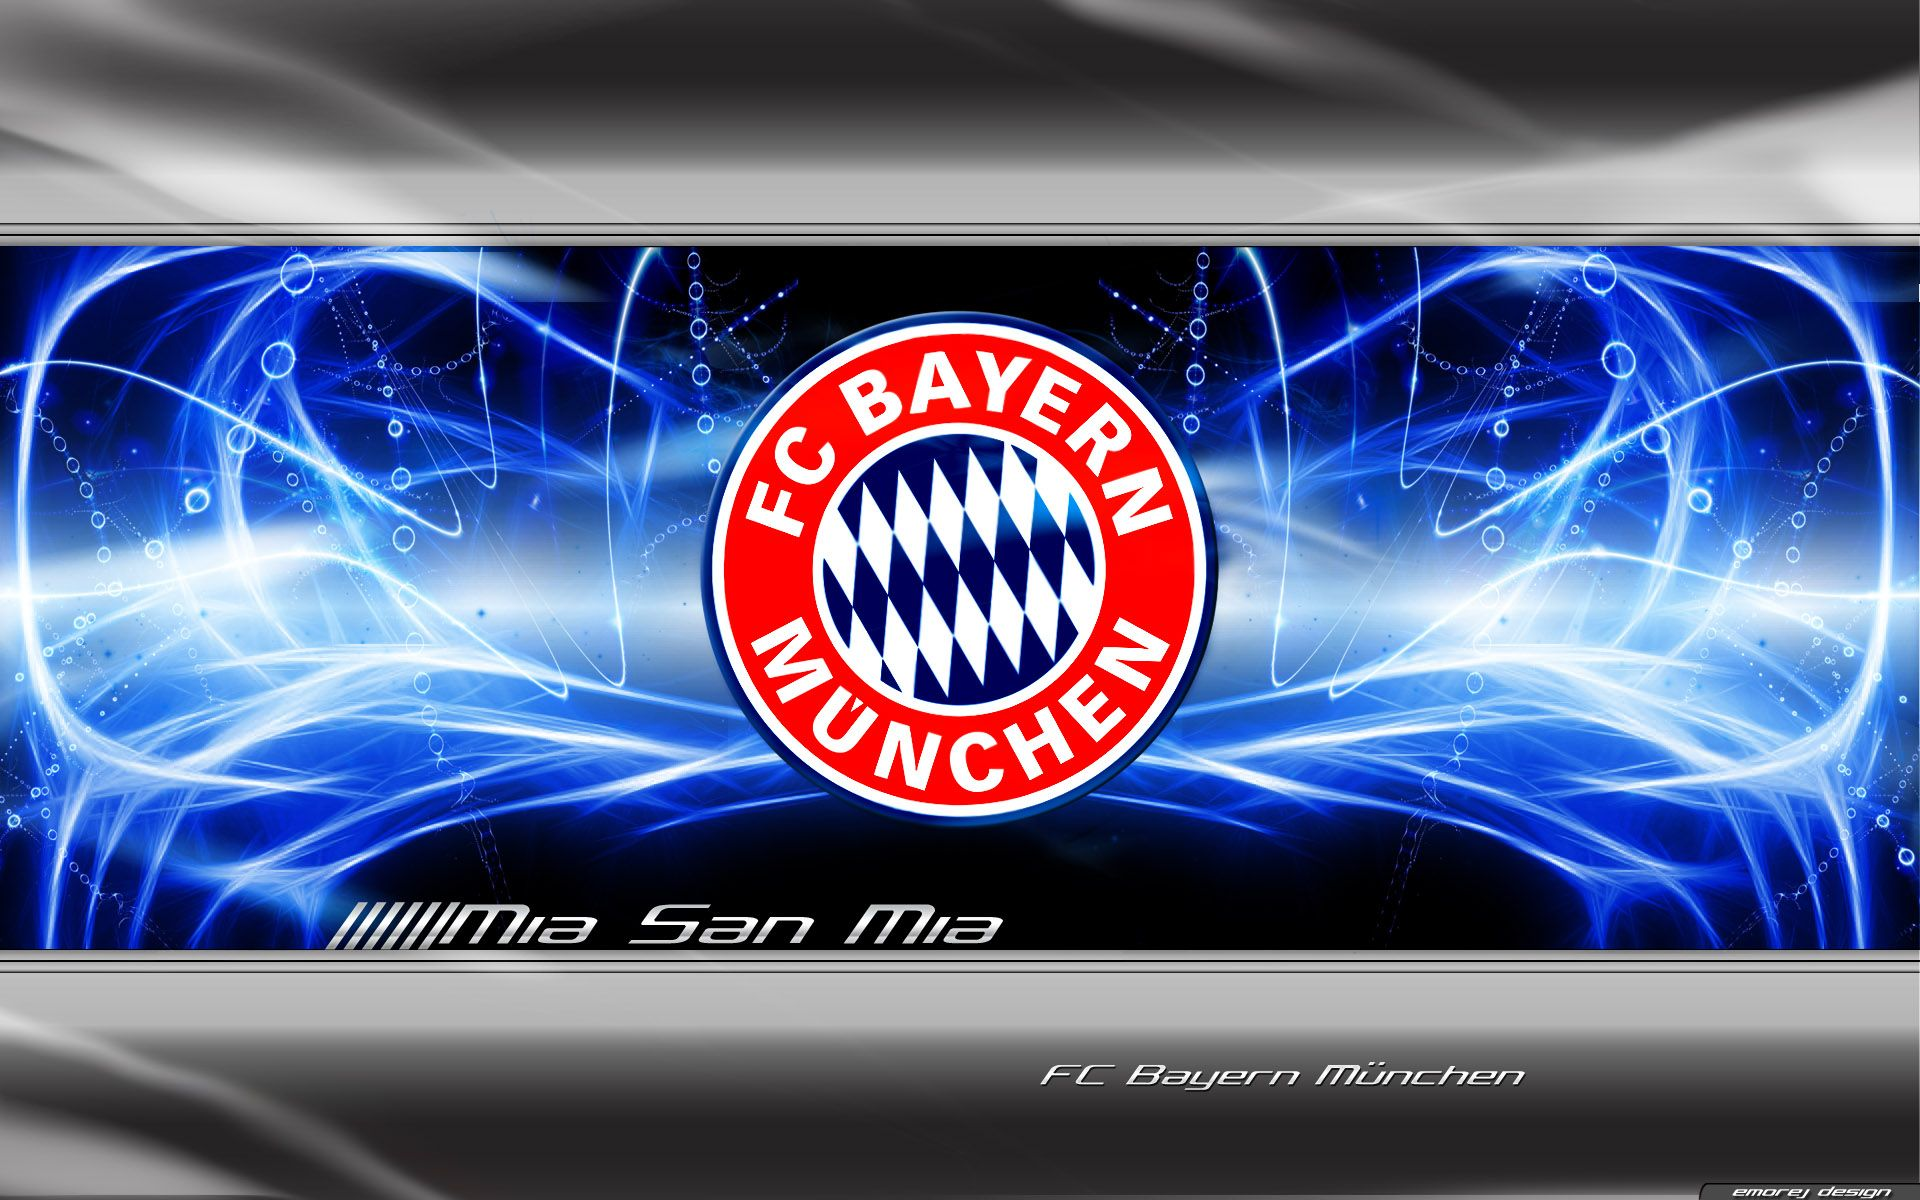 Fc bayern munich wallpaper free mobile wallpaper 1000700 fc fc bayern munich wallpaper free mobile wallpaper 1000700 fc bayern wallpapers 39 wallpapers voltagebd